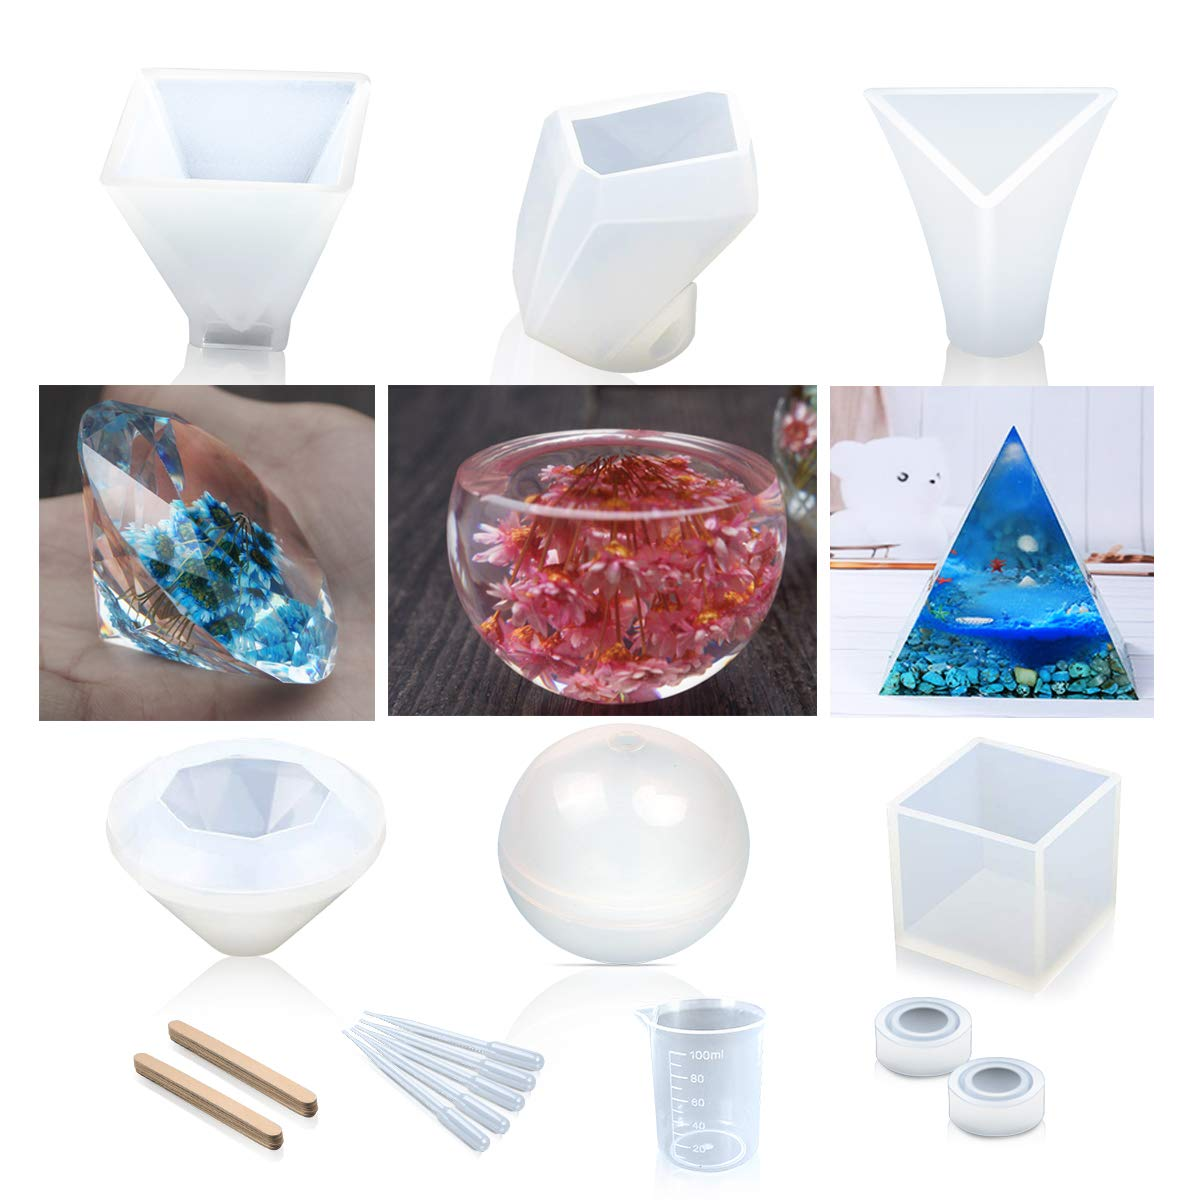 Resin Casting Molds, 8 Pack Large Clear DIY Silicone Molds Including Spherical/Cubic/ Diamond/Pyramid/ Triangular Pyramid/Stone/ Ring Shape Mold, with Measurement Cup& Sticks& Droppers Vindar